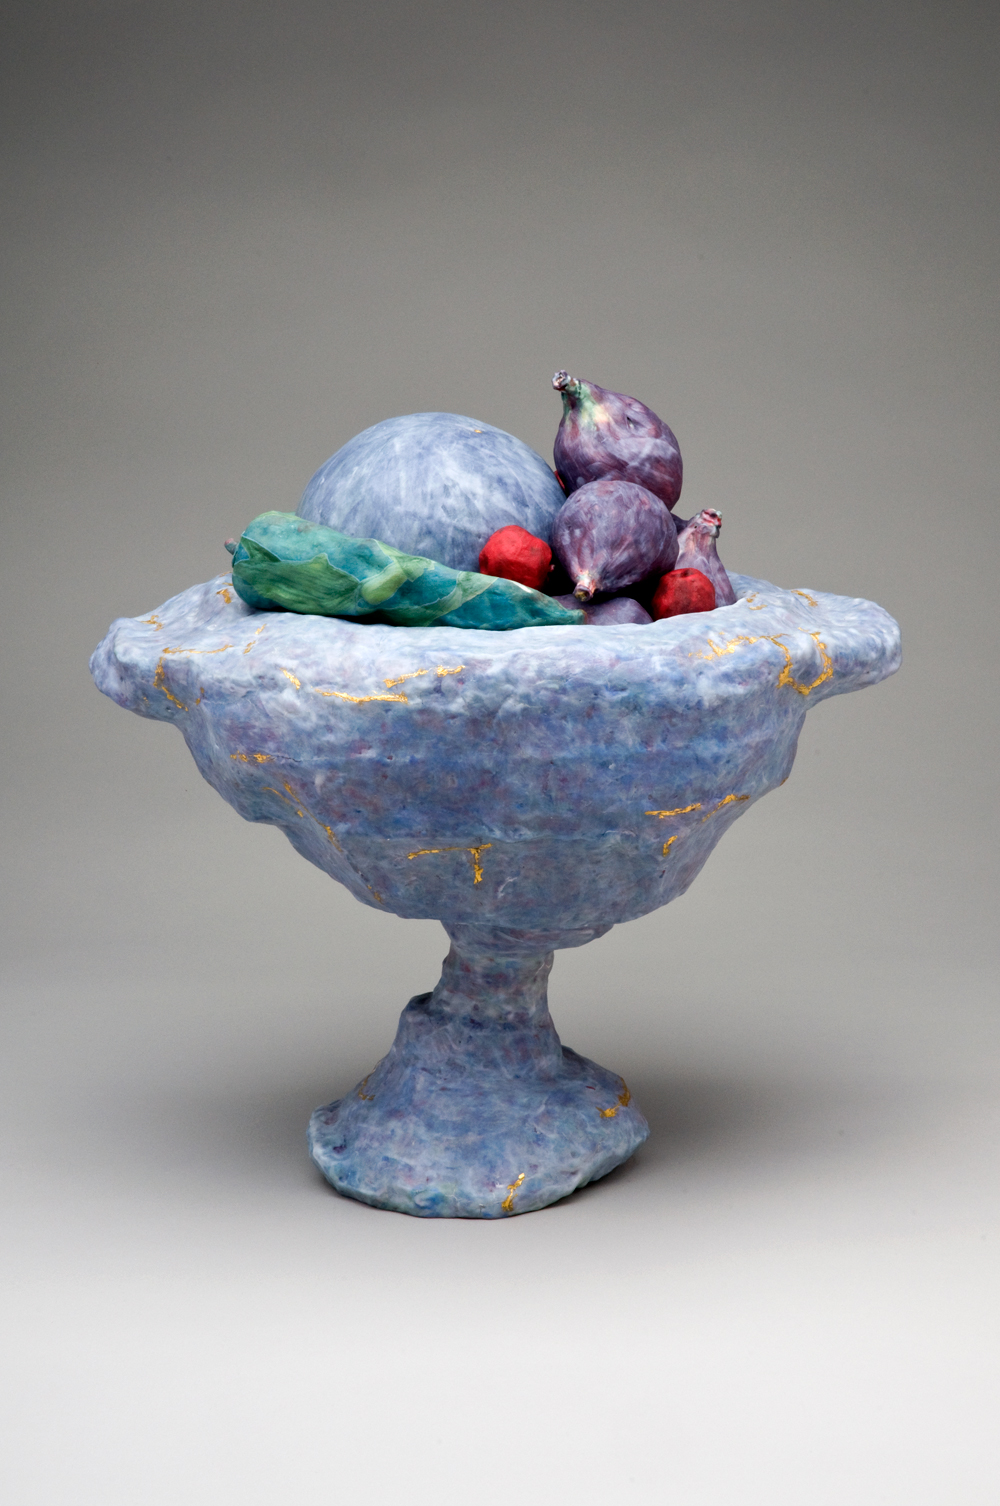 Blue Compotier with Fruits and a Lump